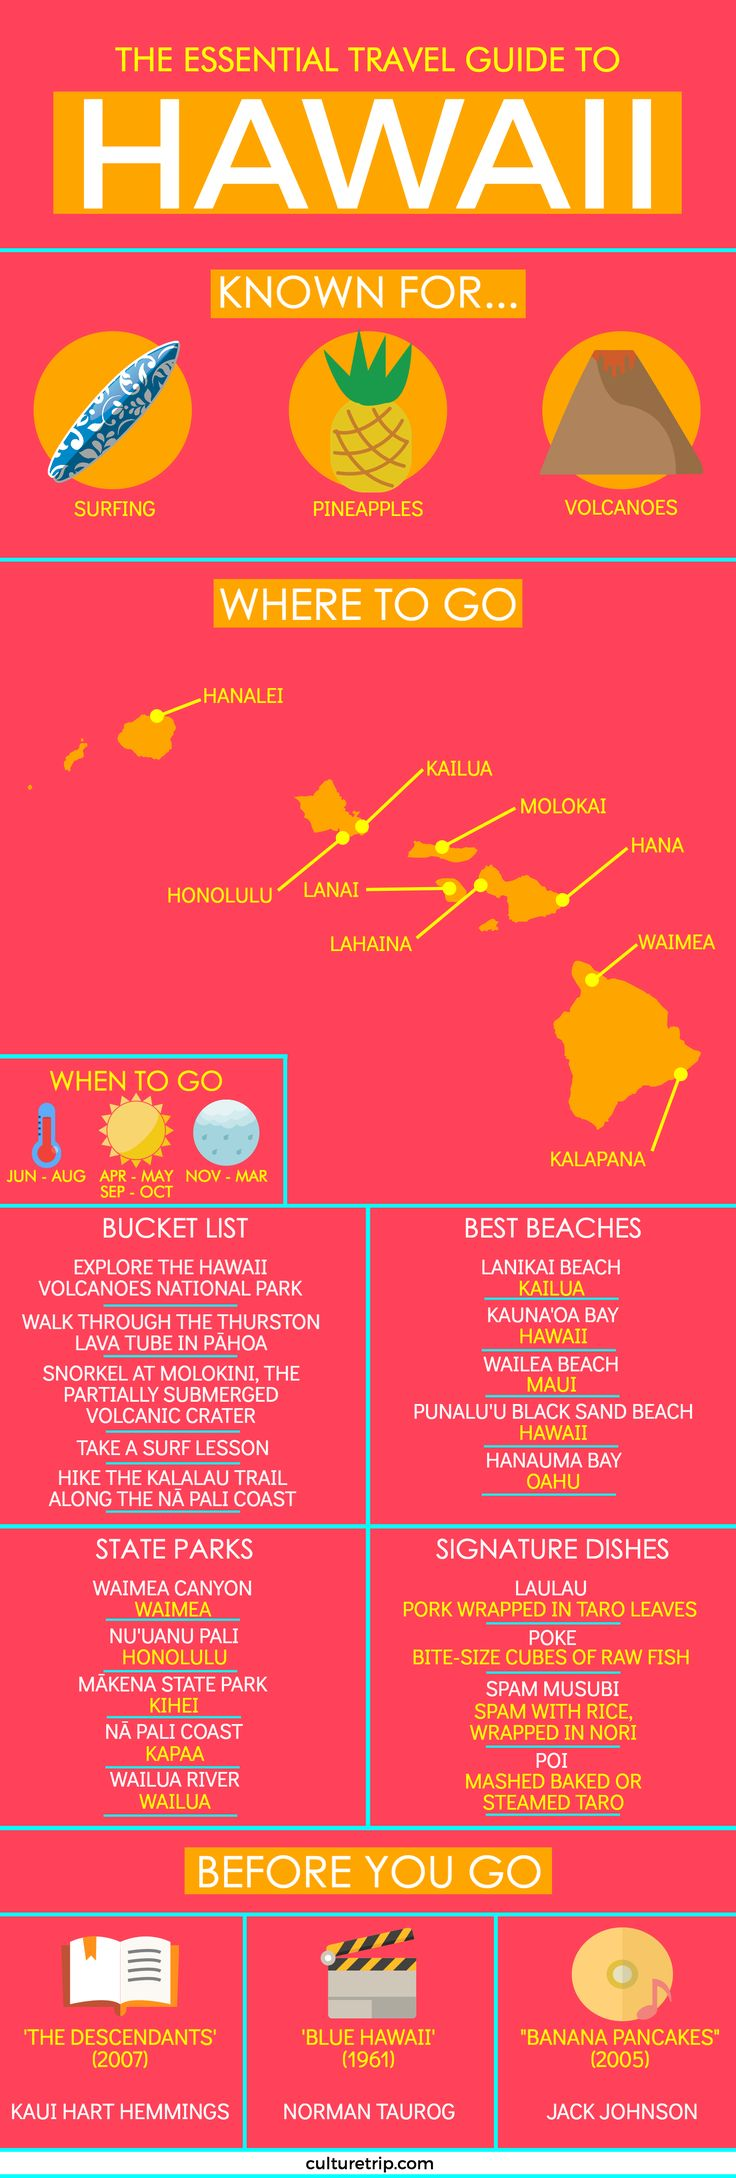 The Ultimate Travel Guide to Hawaii (Infographic)